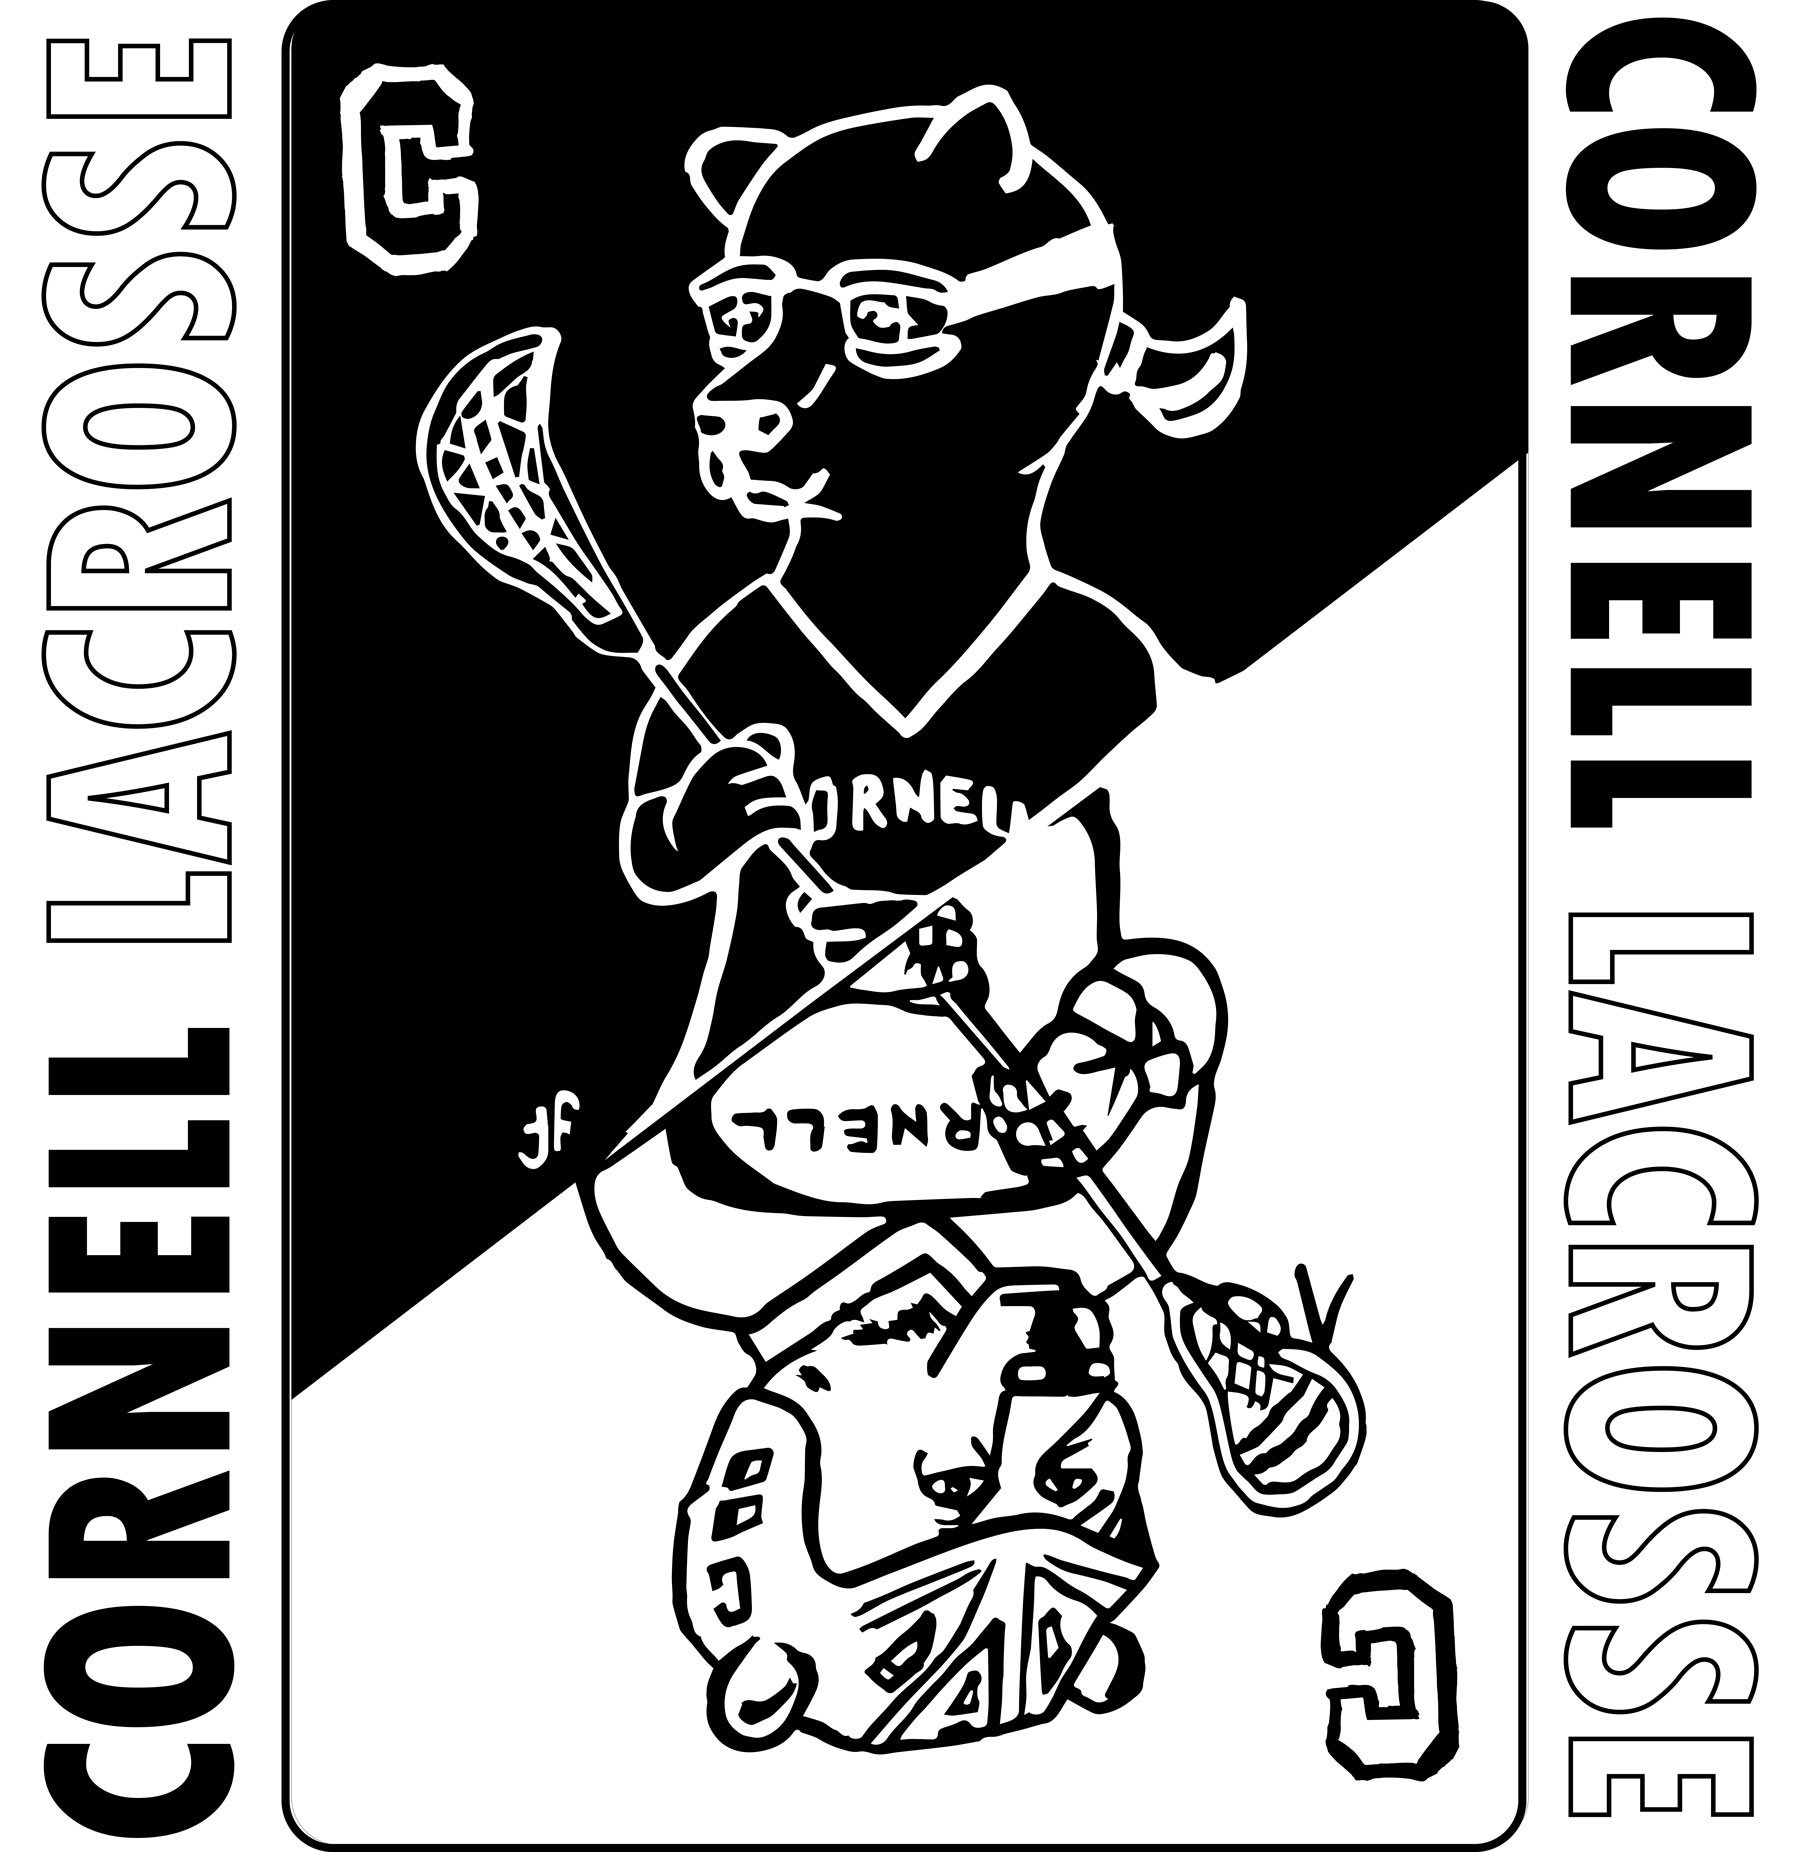 Student Tee Shirt - How to make one design work for Men's and Women's lacrosse?Using a playing card theme, I designed an ink illustration to be used on tee shirts for both women's lacrosse and men's lacrosse while also keeping the two programs united.Image can be flipped so female or male bear is upright.Audience: Current college students